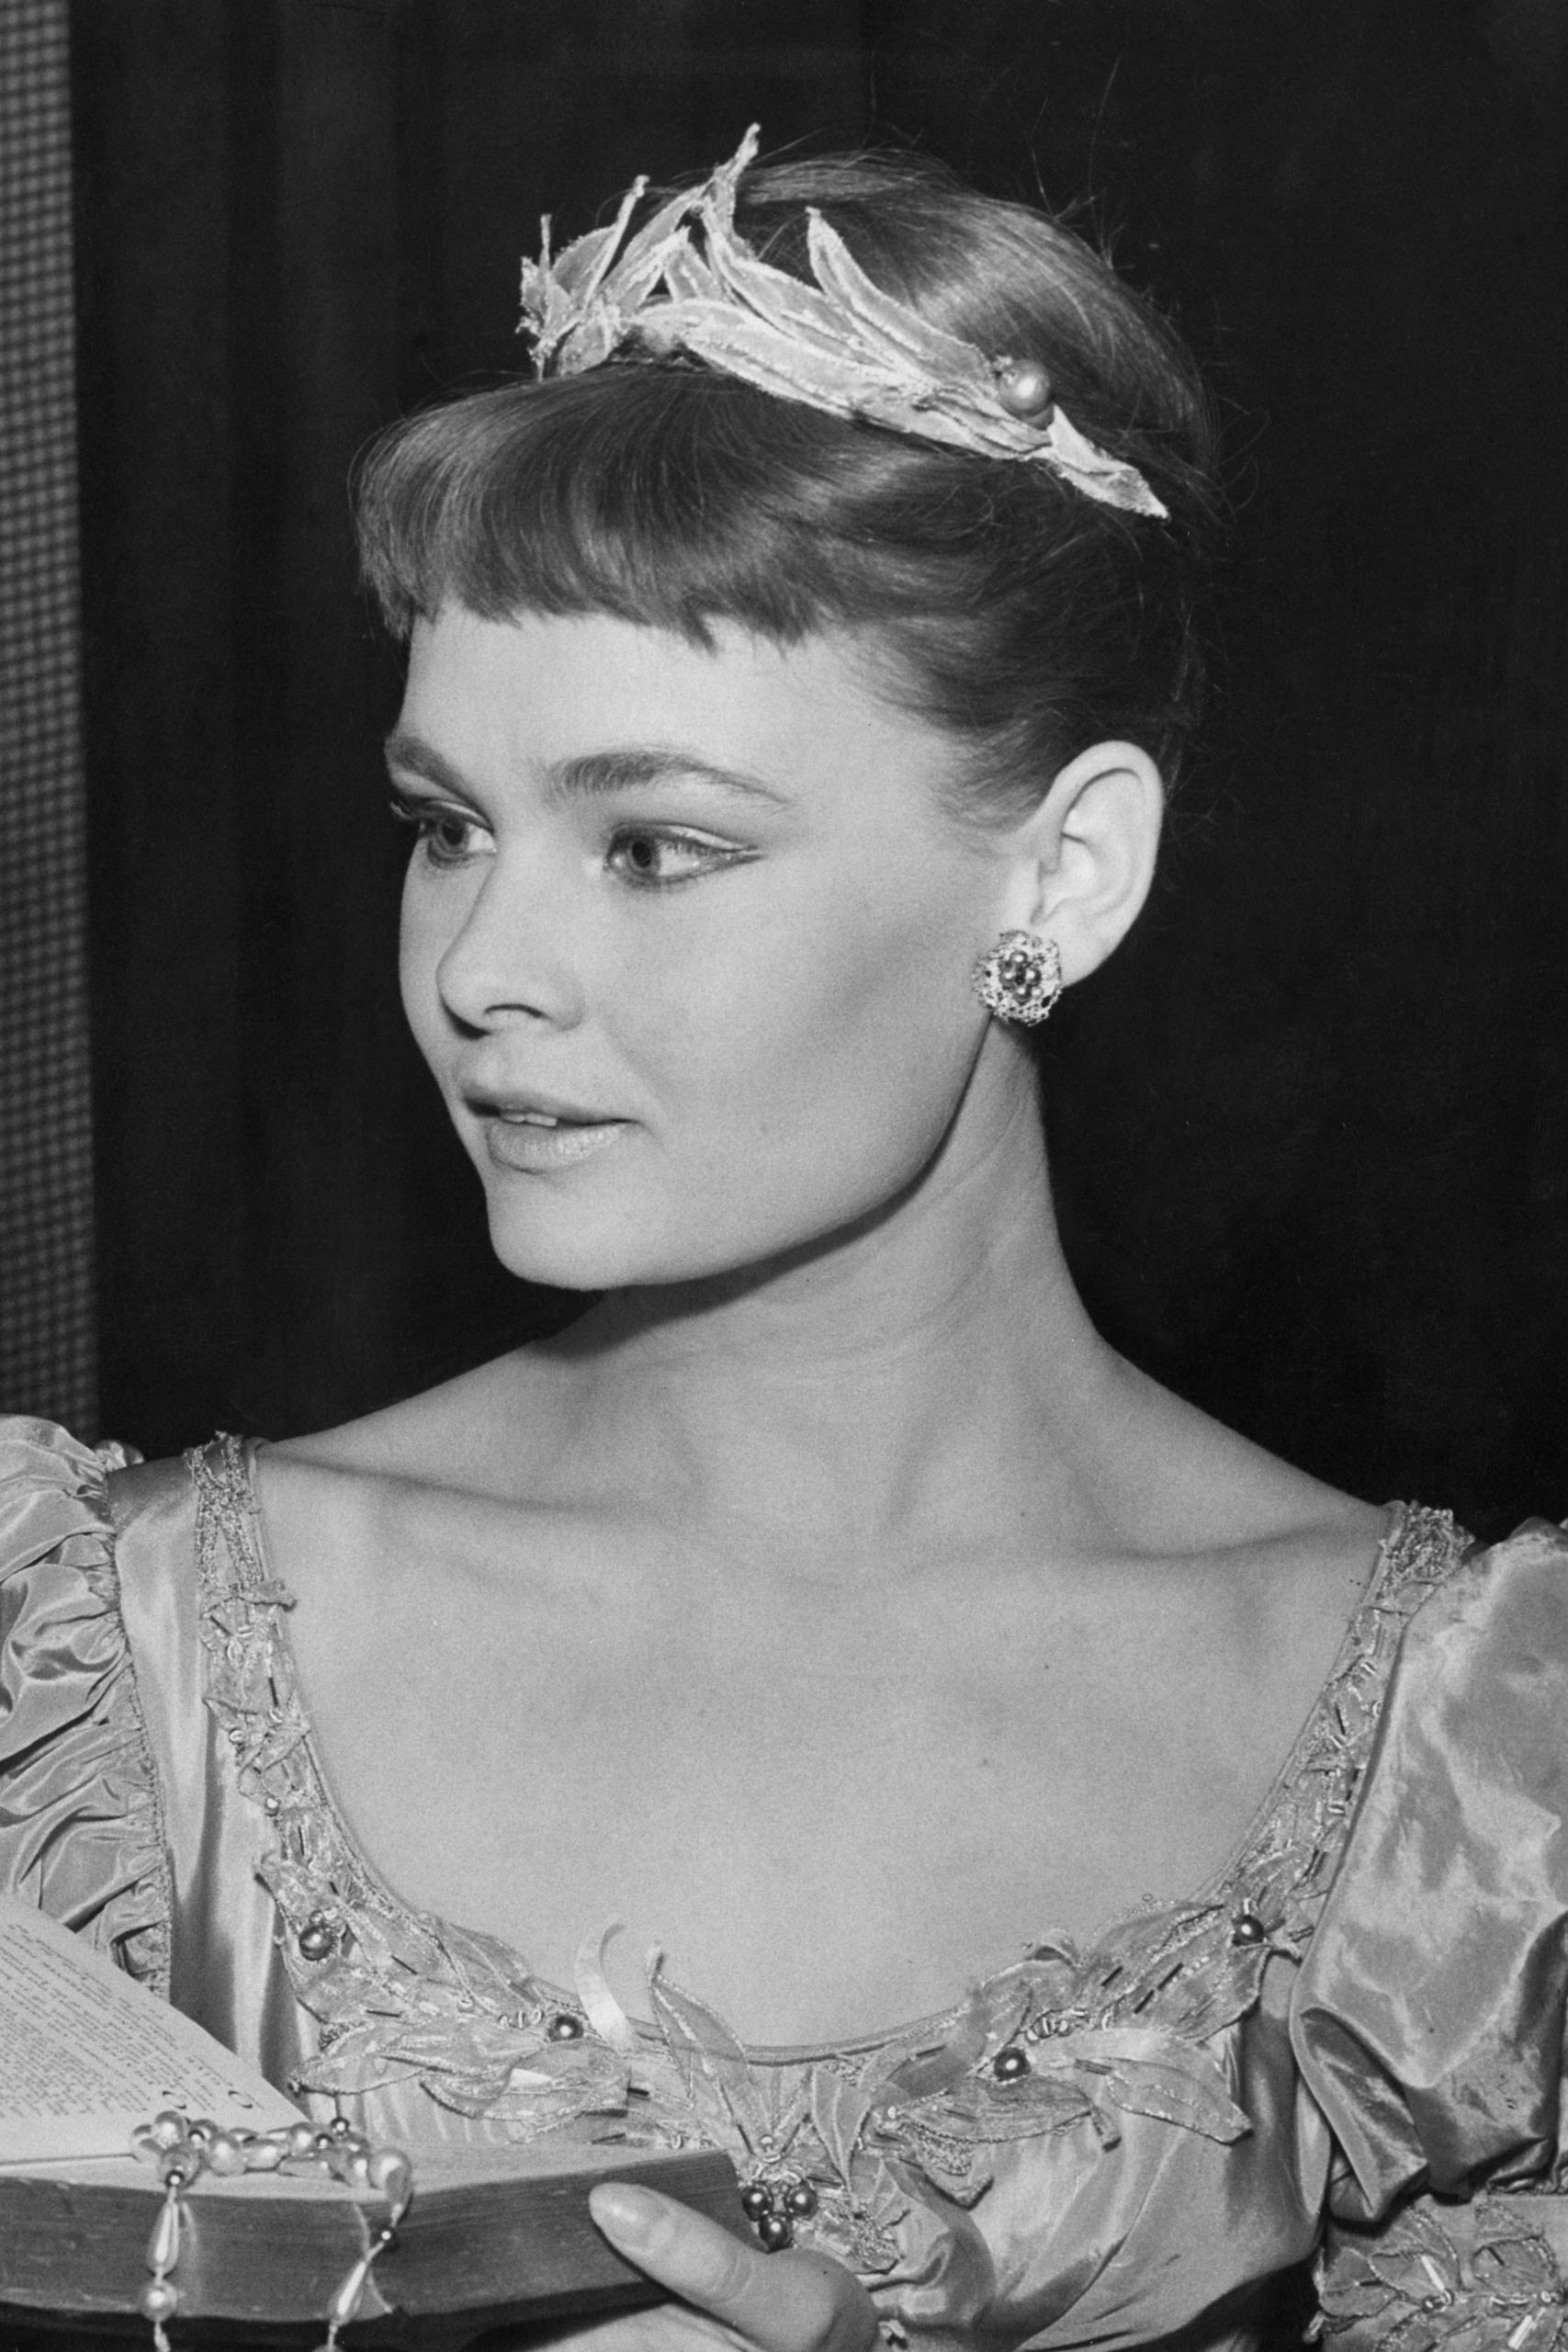 "<strong>Judi Dench</strong> Before having to deal with James Bond's oft-infuriating antics as the first female to play ""M,"" Dench spent most of her career gracing the stages of British theater and television."